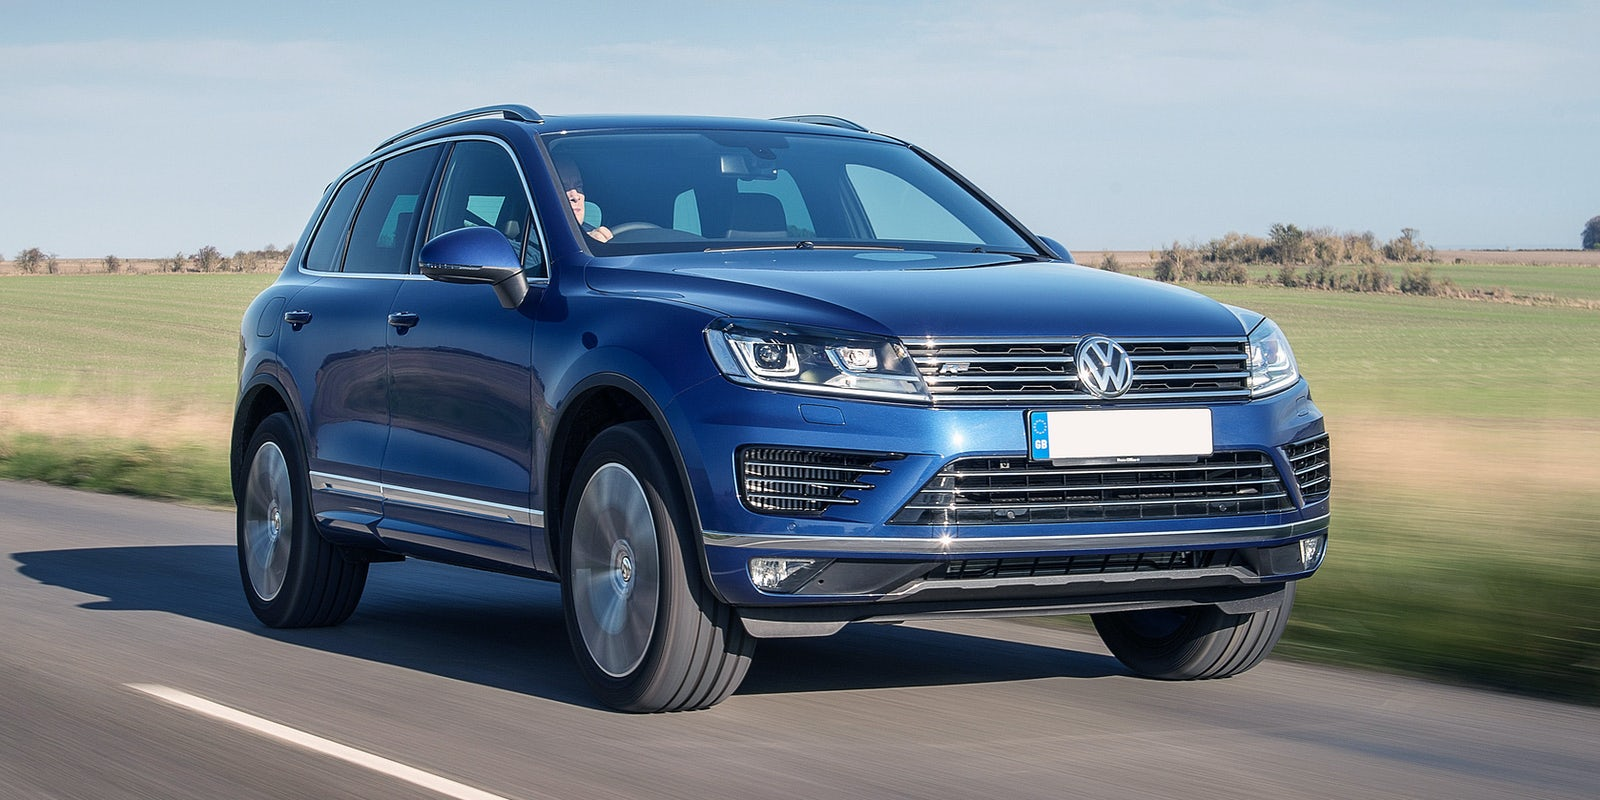 volkswagen touareg review carwow. Black Bedroom Furniture Sets. Home Design Ideas